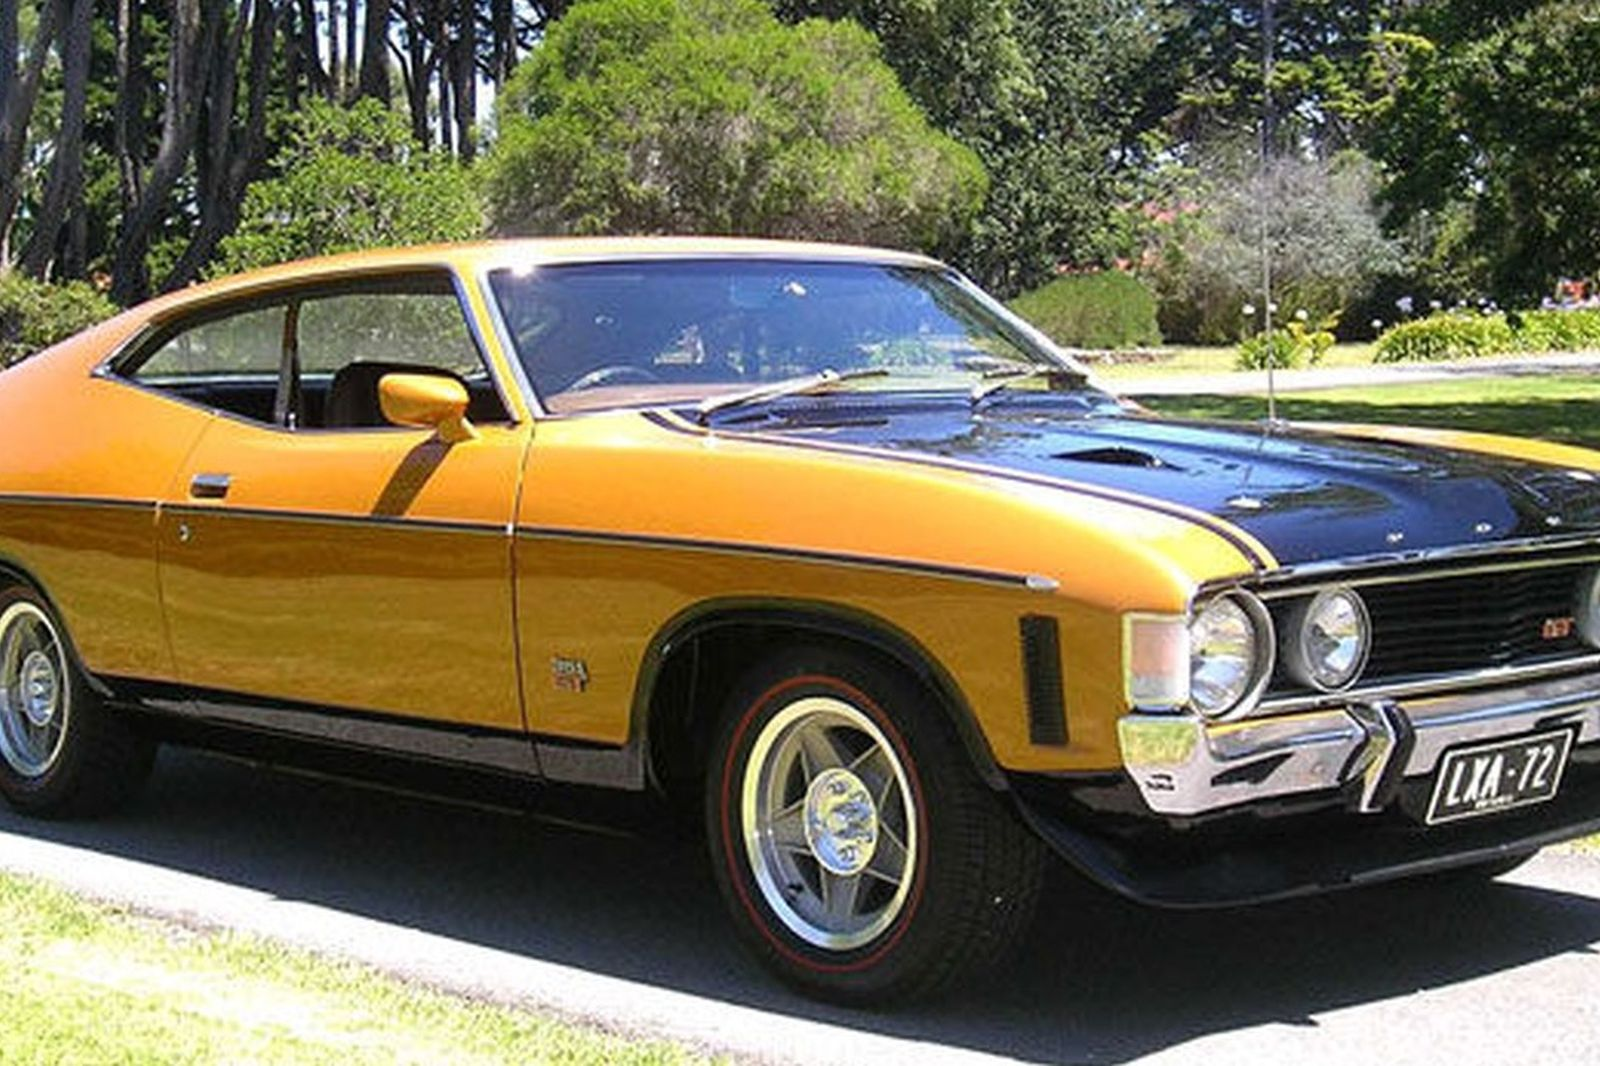 Sold: Ford Falcon XA GT Coupe Auctions - Lot 34 - Shannons  Sold: Ford Falc...